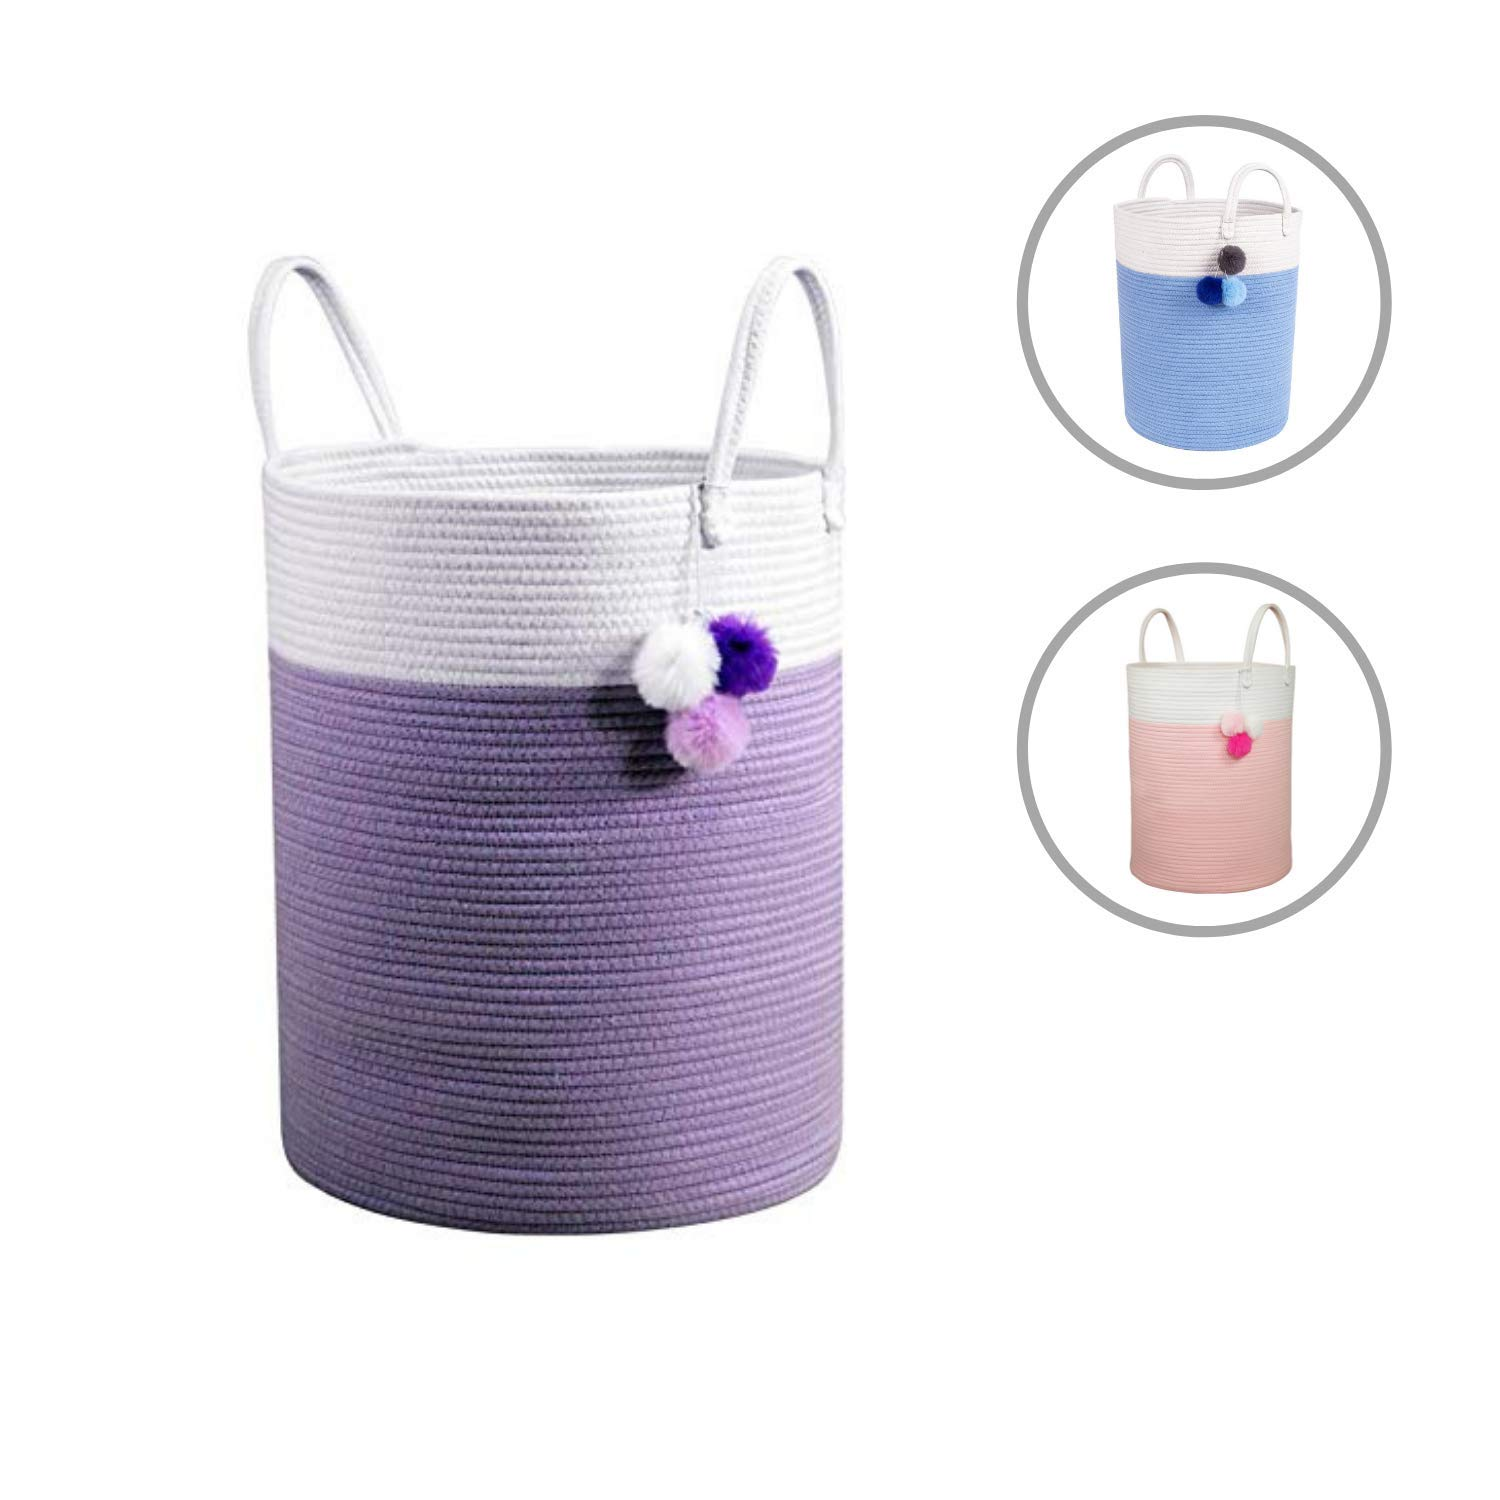 2 Pack 19.7 Large Printed Foldable Laundry Hamper Bag Laundry Basket Sorter Black line//White Canvas Fabric Storage Basket Bin Home Organizer Containers for Nursery Baby Kids Toys